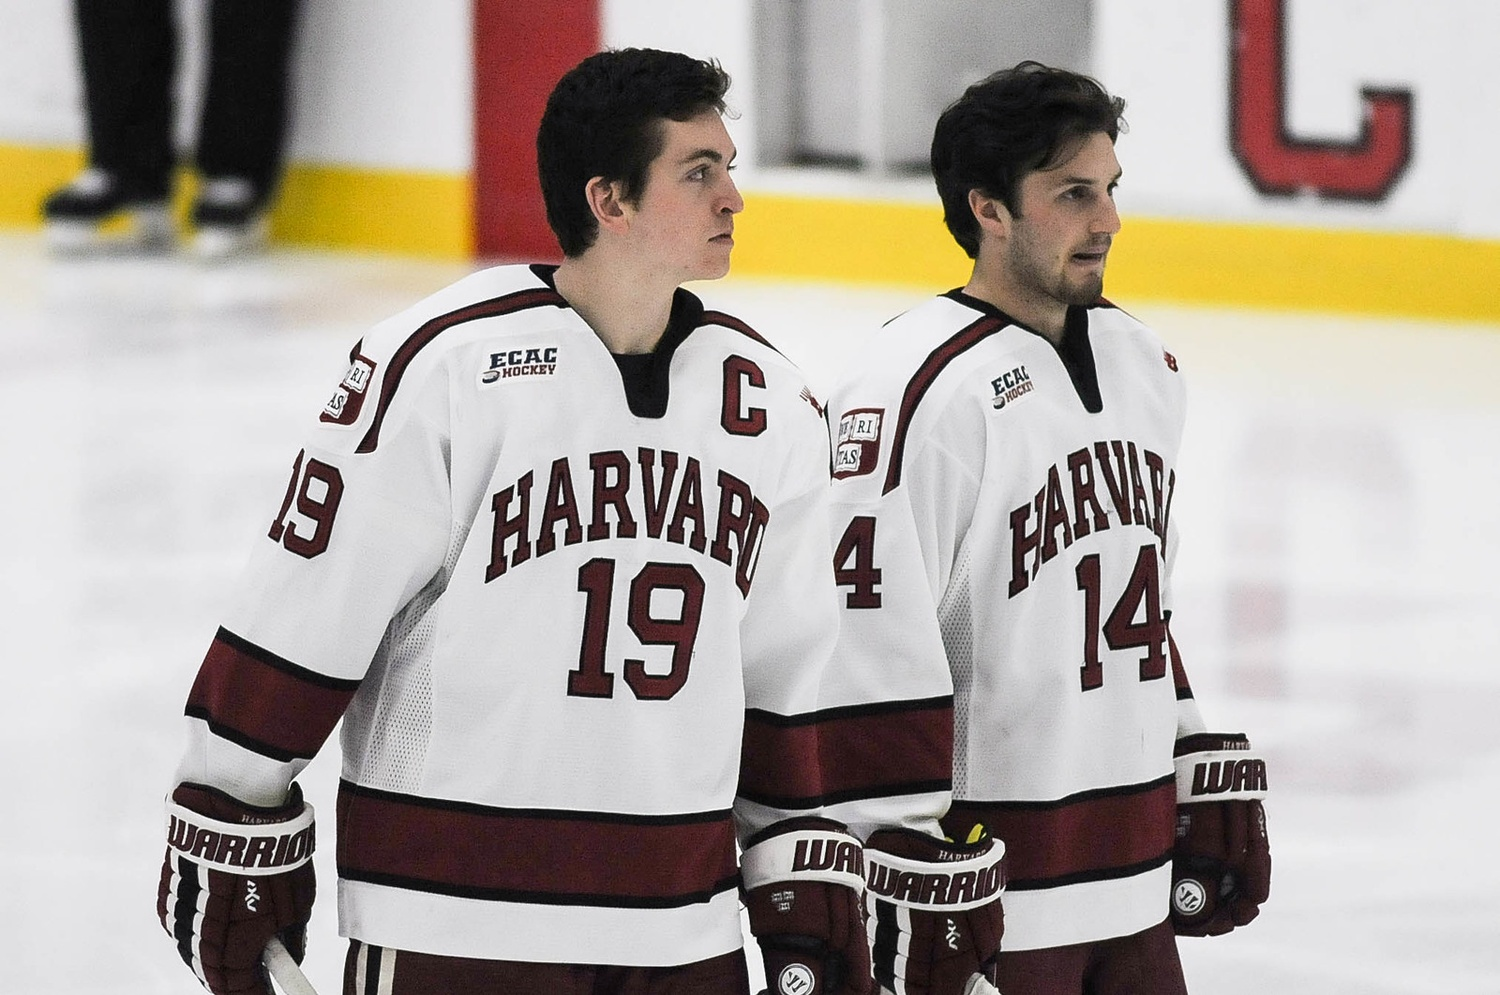 Former program standouts such as Jimmy Vesey '16 (left) and Alexander Kerfoot '17 (right) are always difficult to replace.